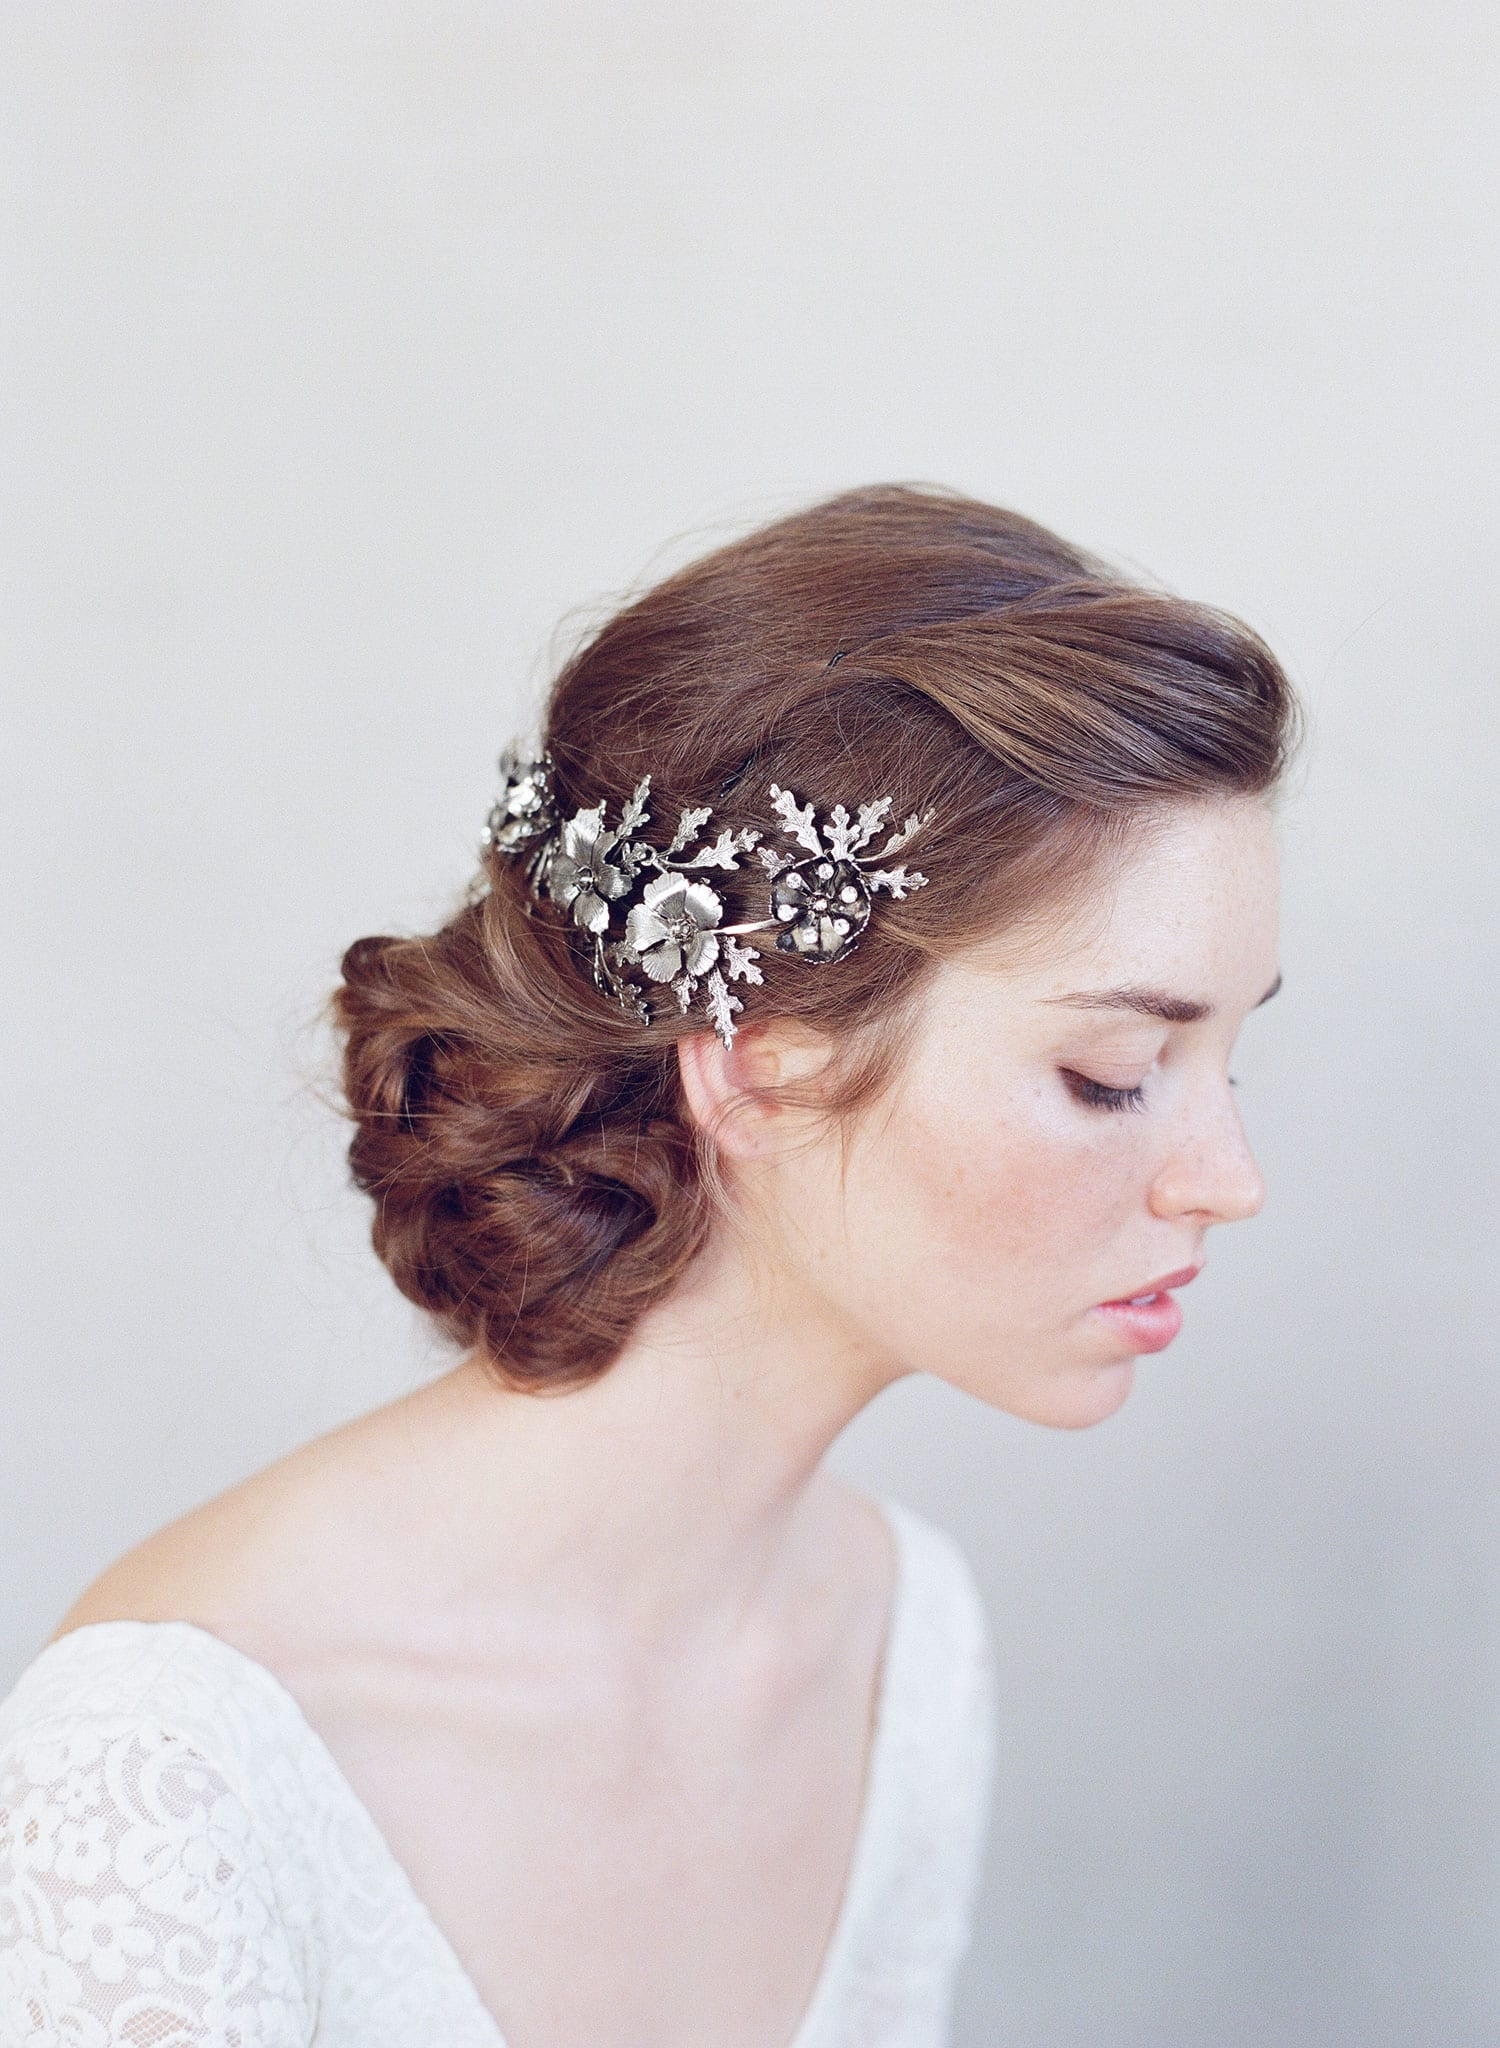 Bridal Headpiece Floral Wedding Accessory Plated Hair Adornment Nature Inspired